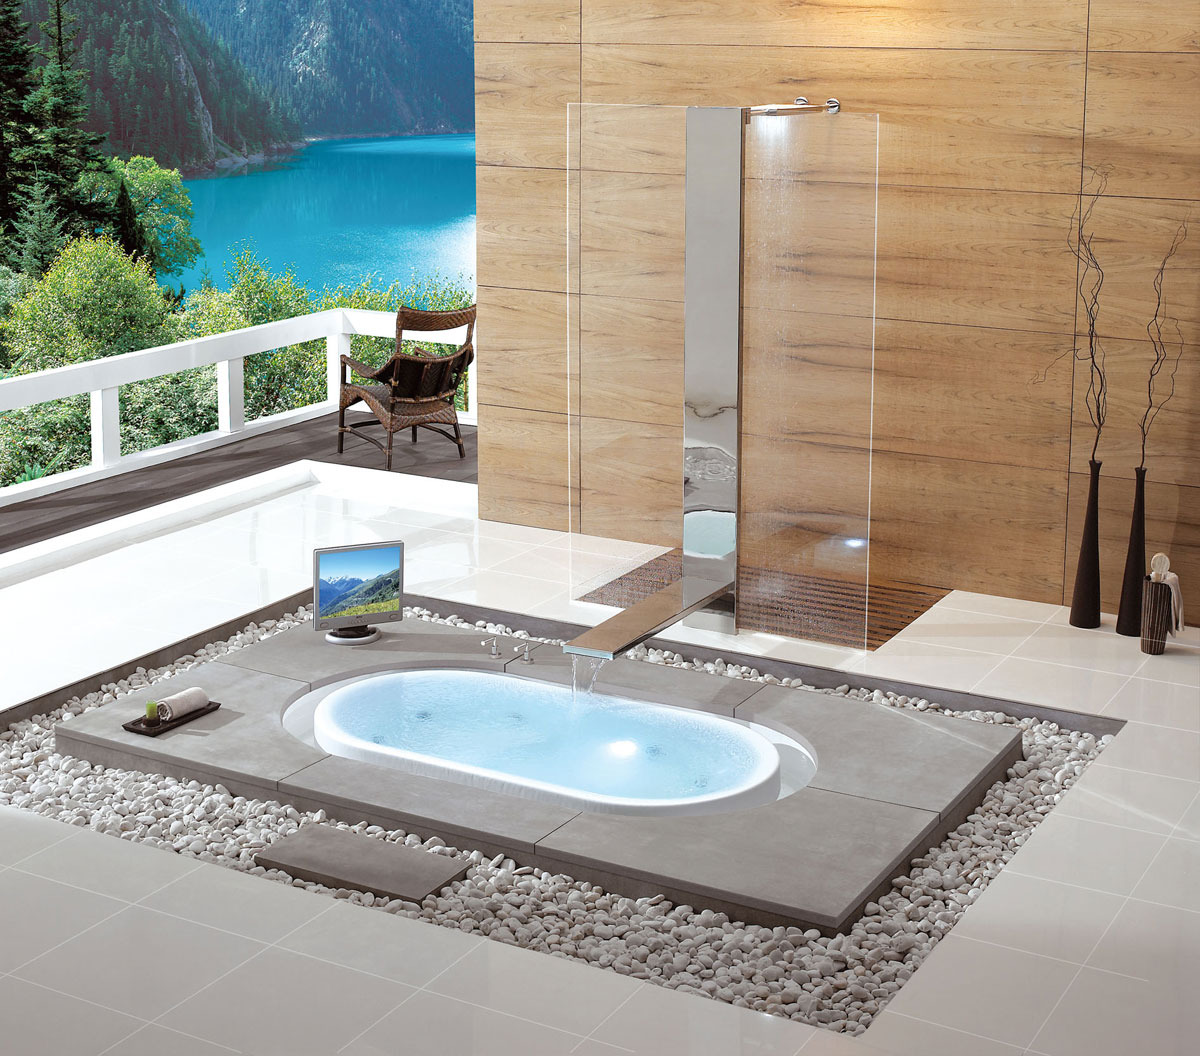 The Overflow Bathtub Collection by Kasch &#8211; Relaxing Oasis in Your Home